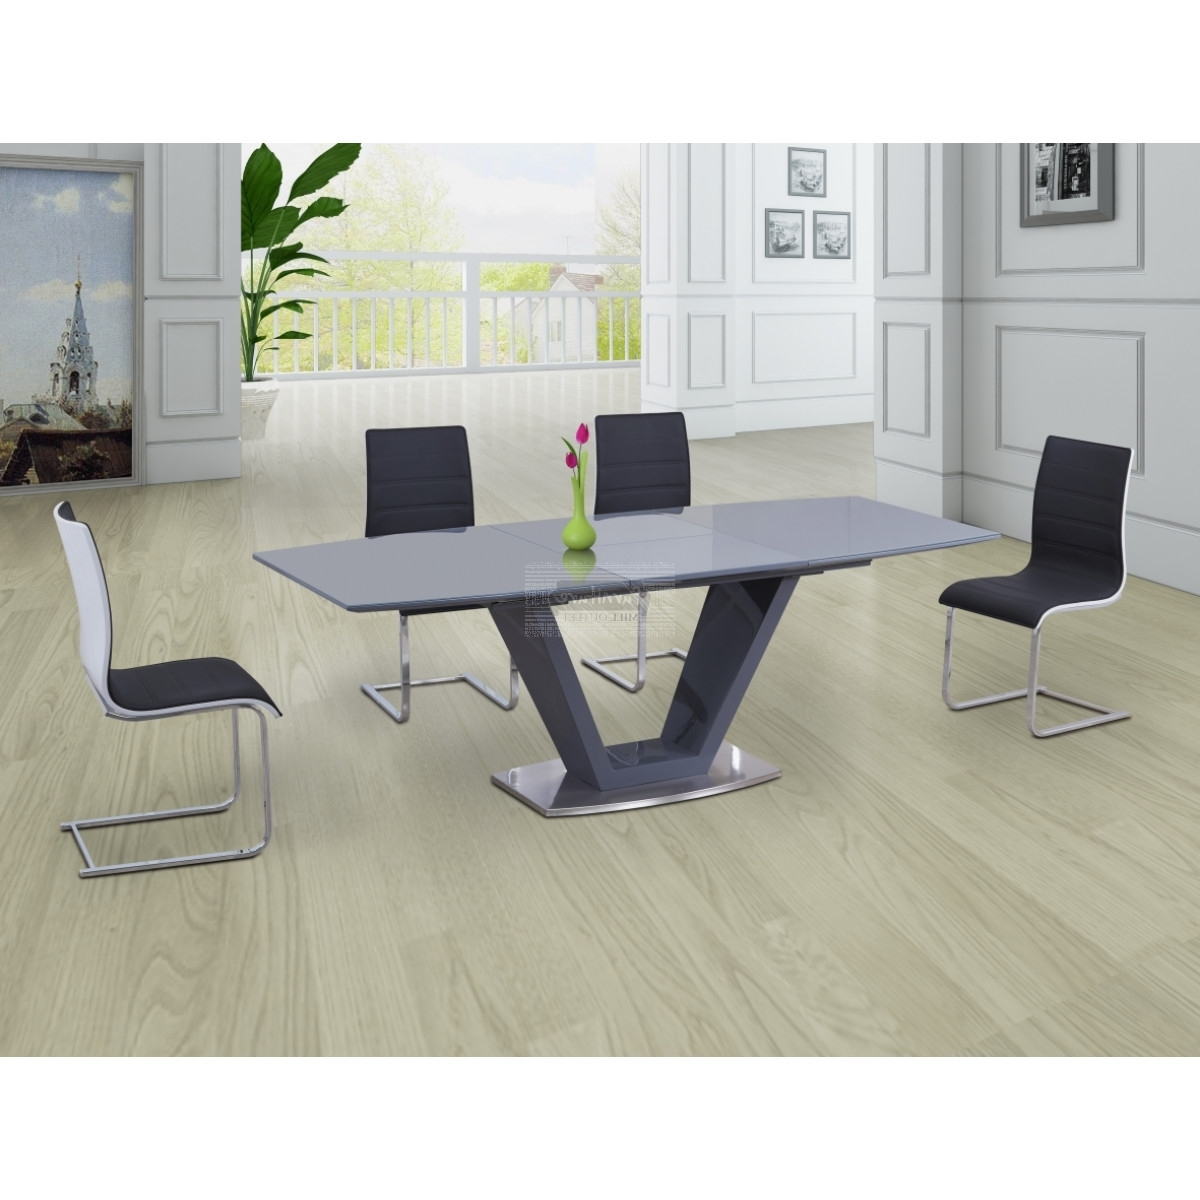 Trendy High Gloss Extending Dining Tables Within Lorgato Grey High Gloss Extending Dining Table – 160Cm To 220Cm (View 23 of 25)